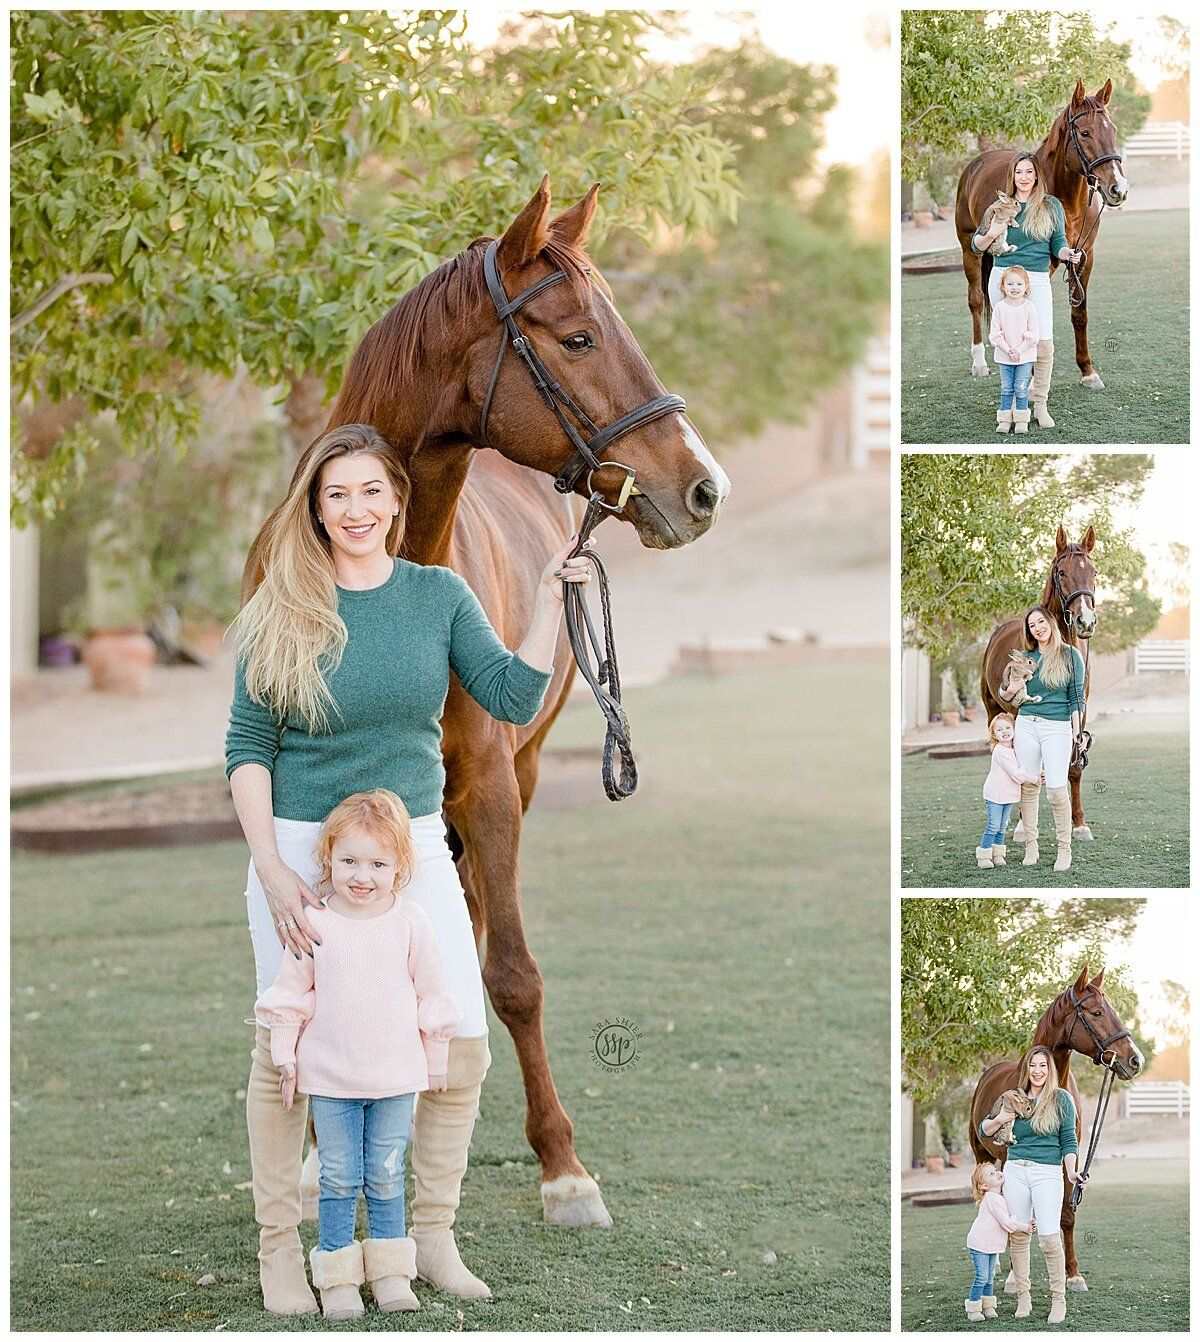 Jamie, Madden + Crew | Hunter's Edge | Las Vegas, NV | Horse photos, Equine photographer, Las vegas